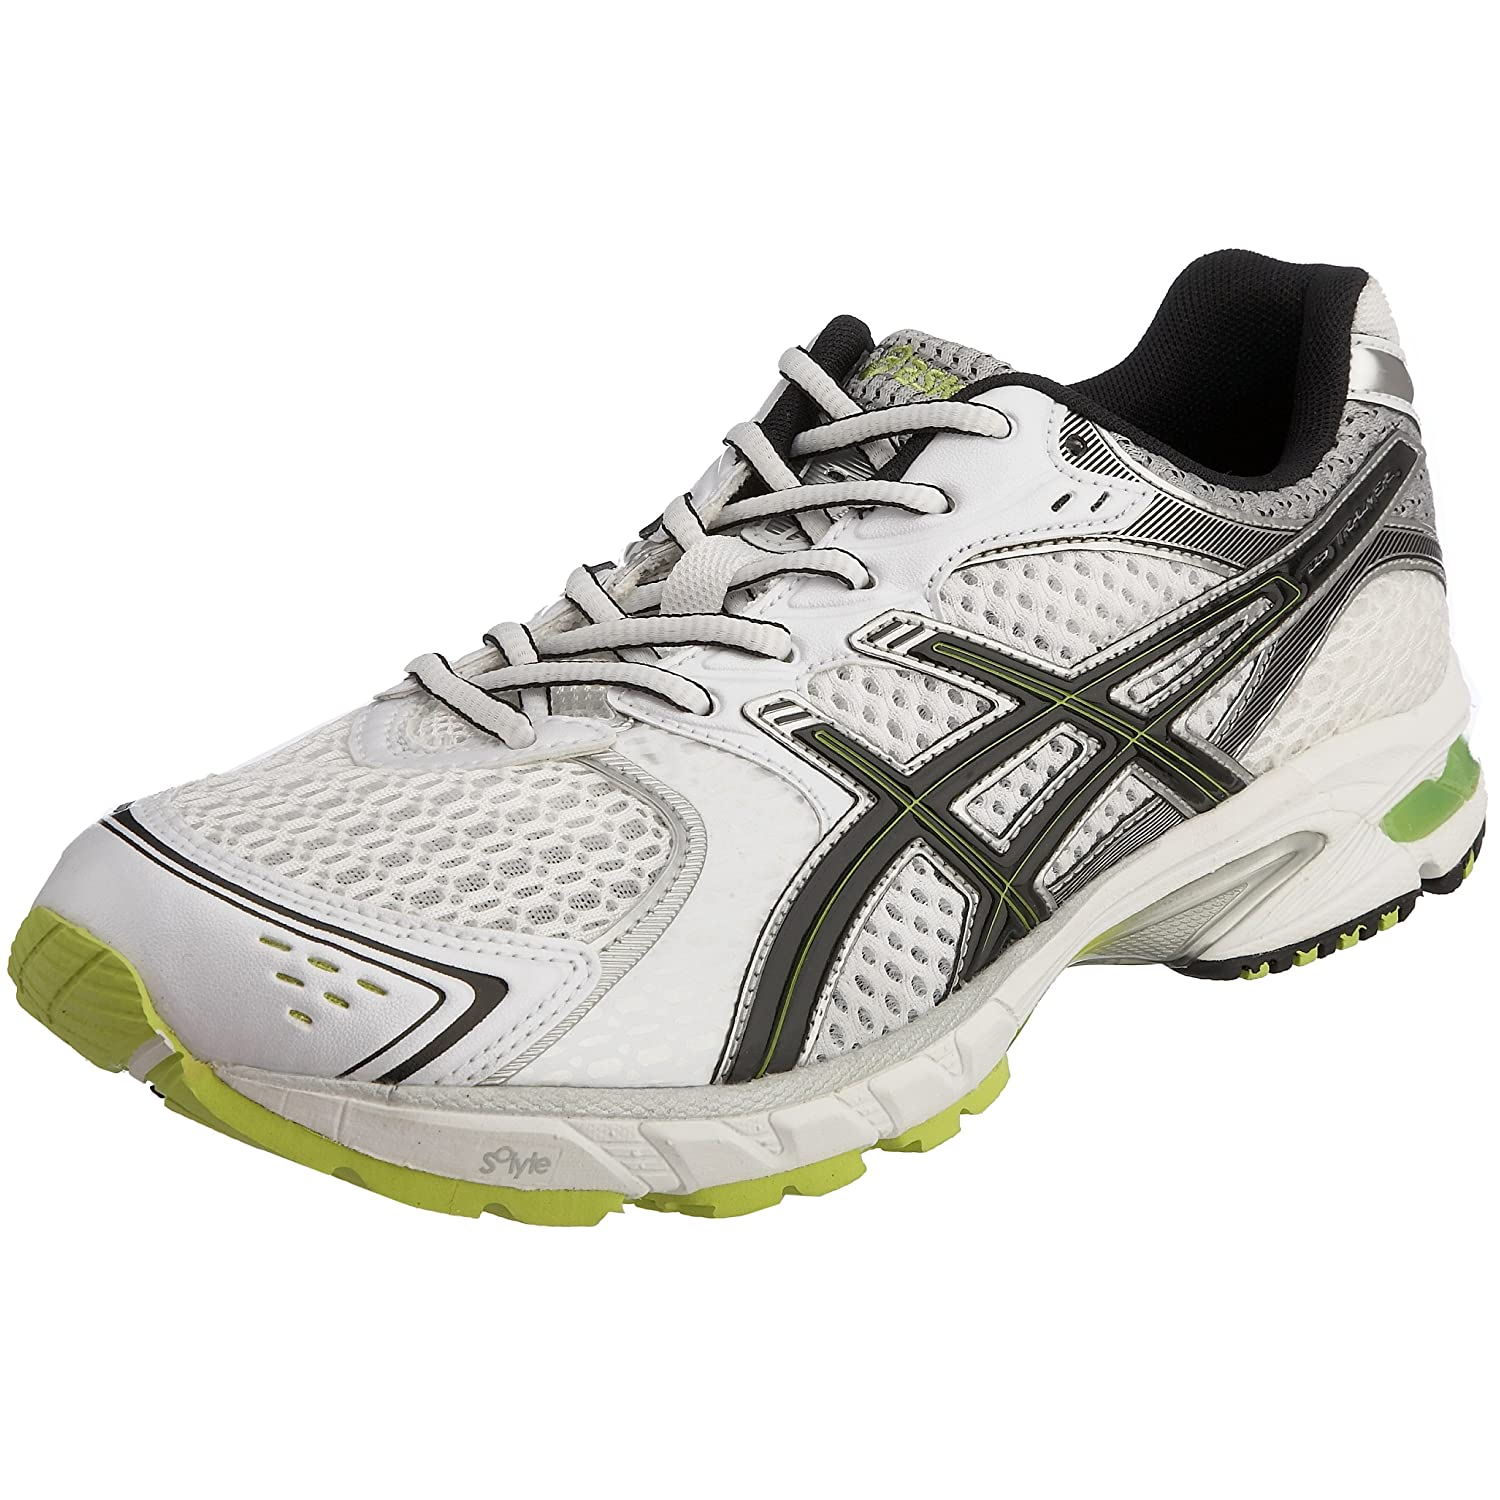 promo code 122f5 9d127 Asics Men's Gel DS Trainer 15 Running Shoe